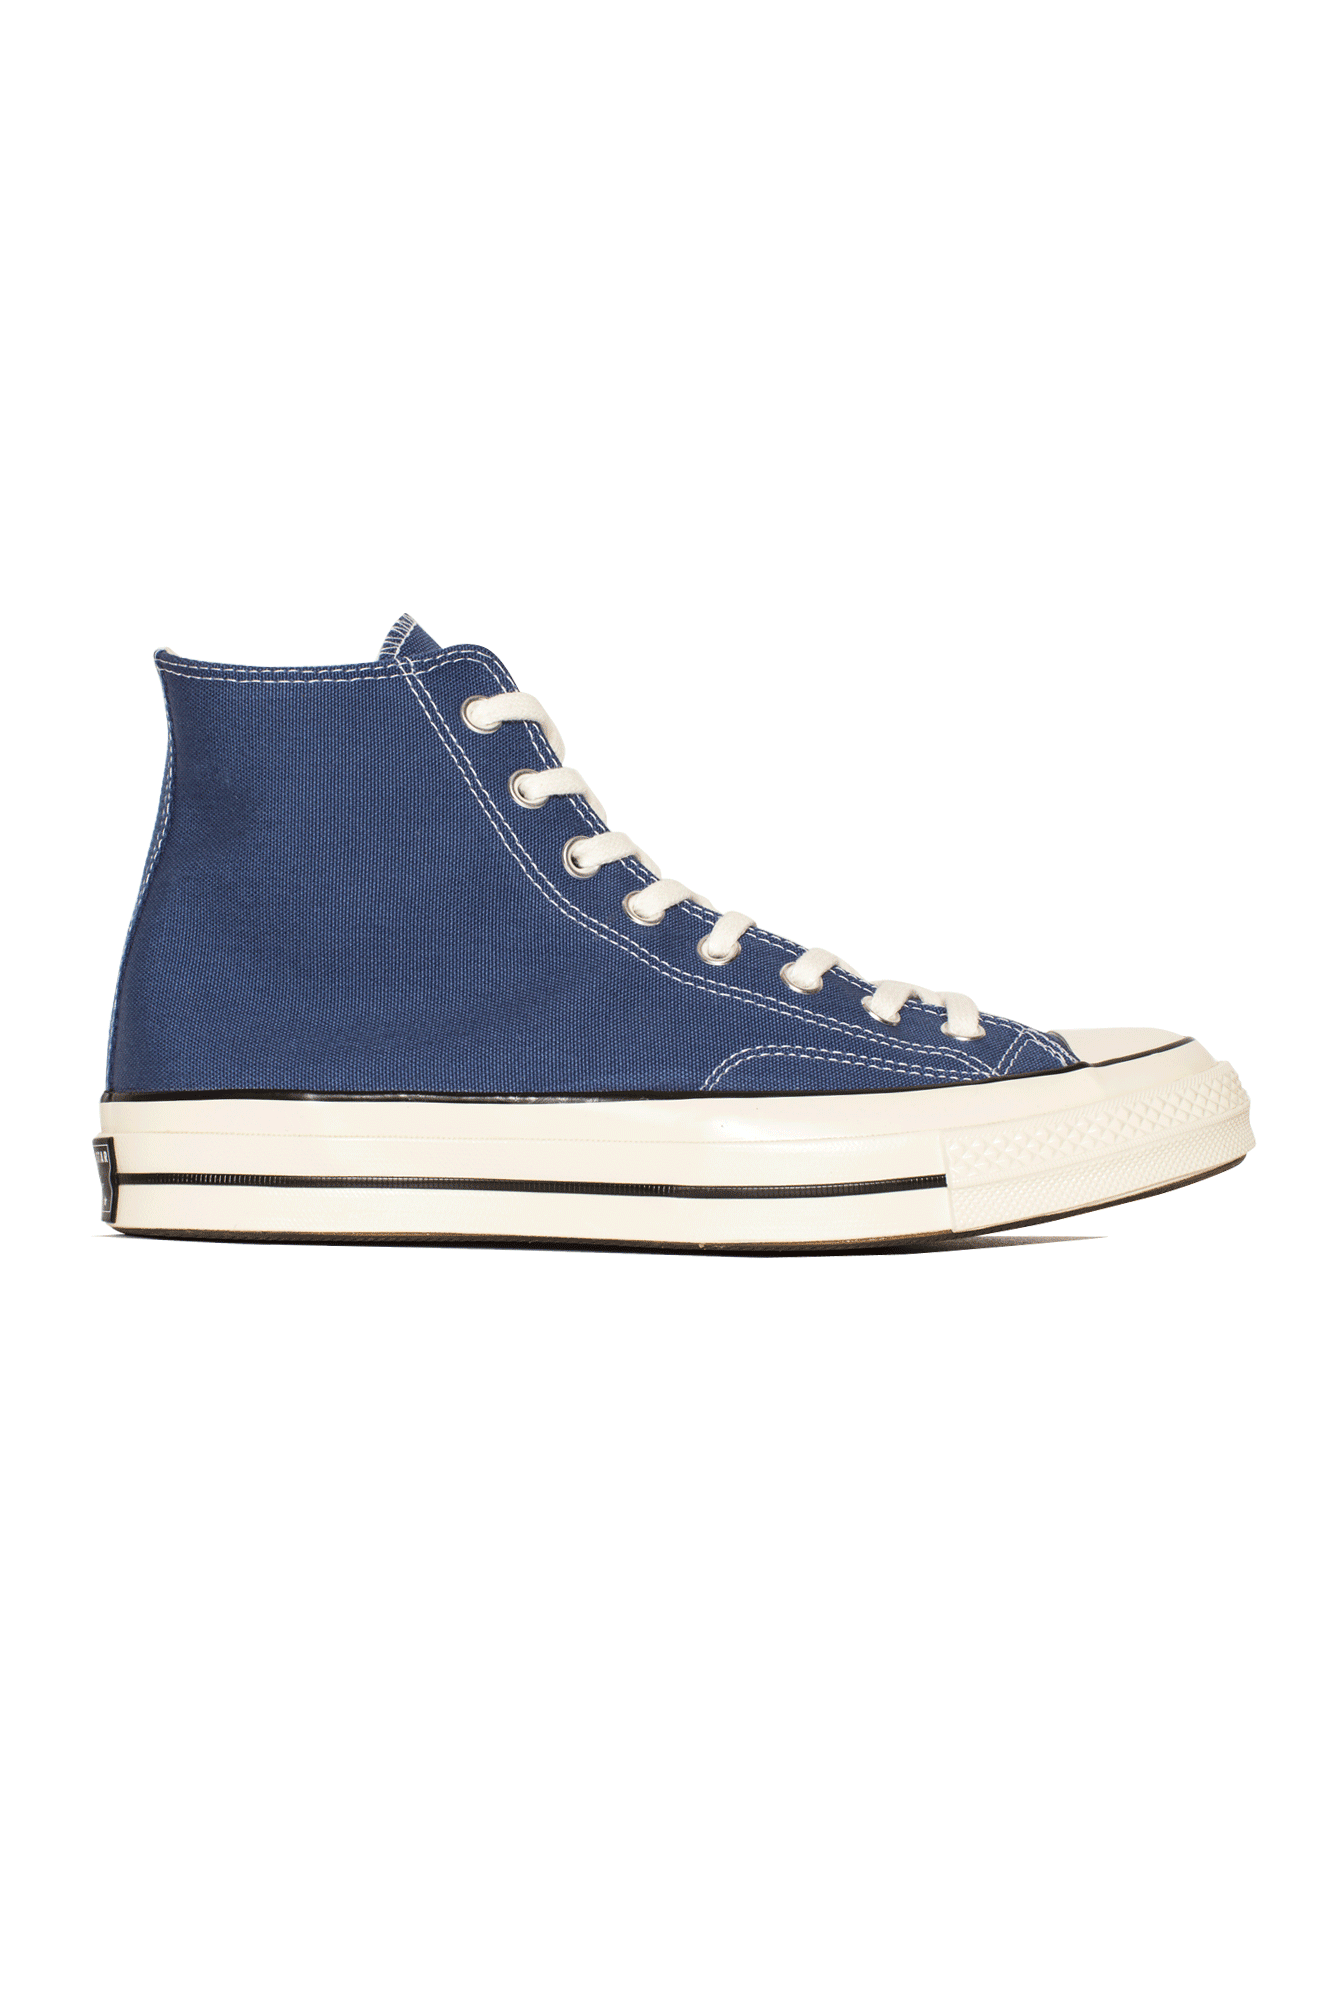 Converse Sneakers Chuck 70 Hi Blue 162055C#000#C0007#6 - One Block Down